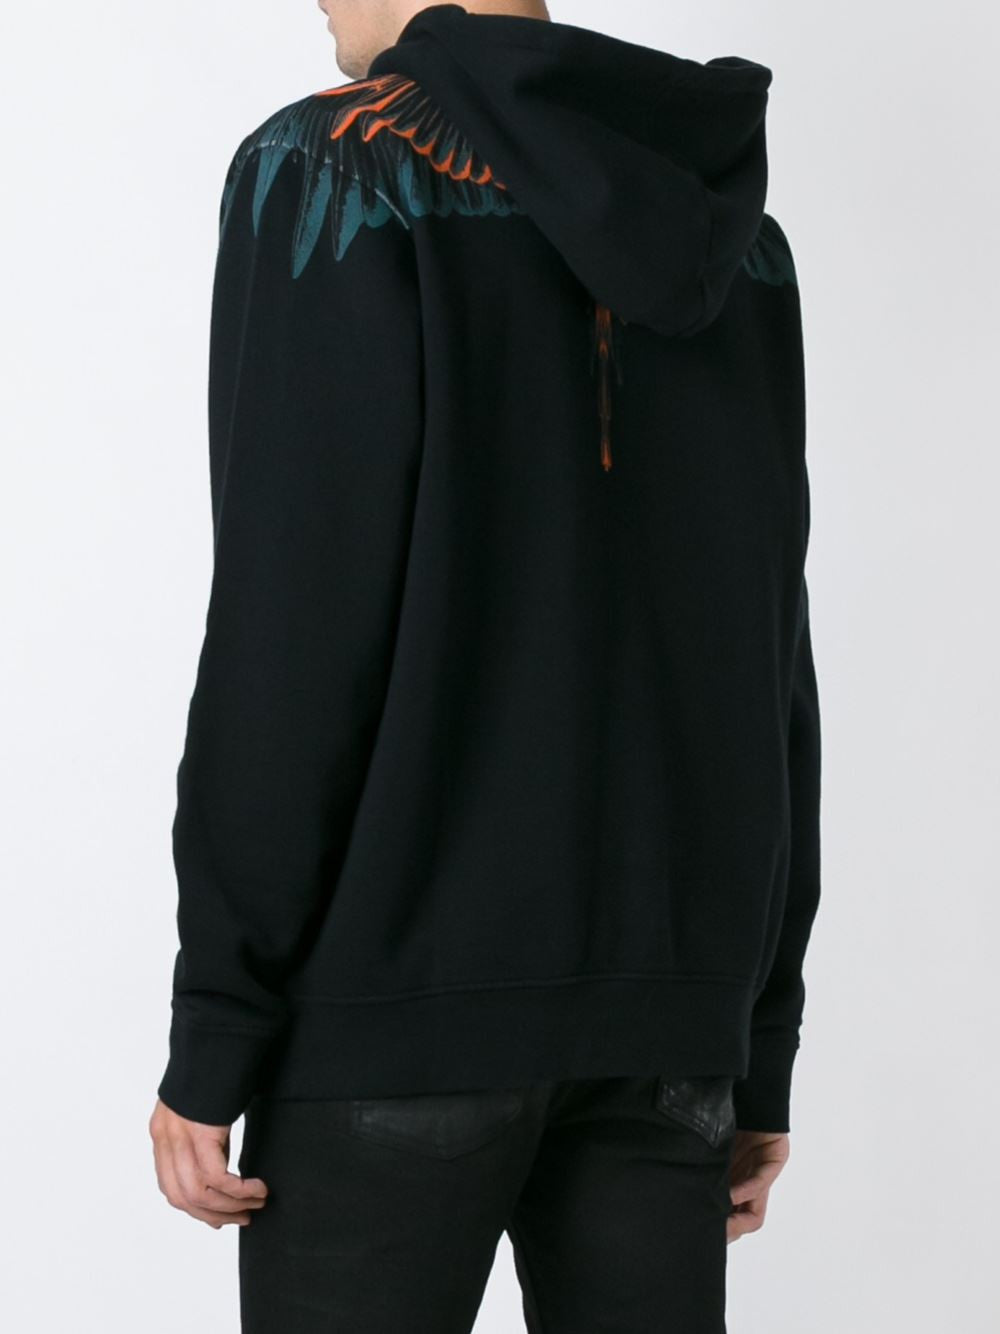 Wingspan Graphic Hoodie | CMBB007F16002027